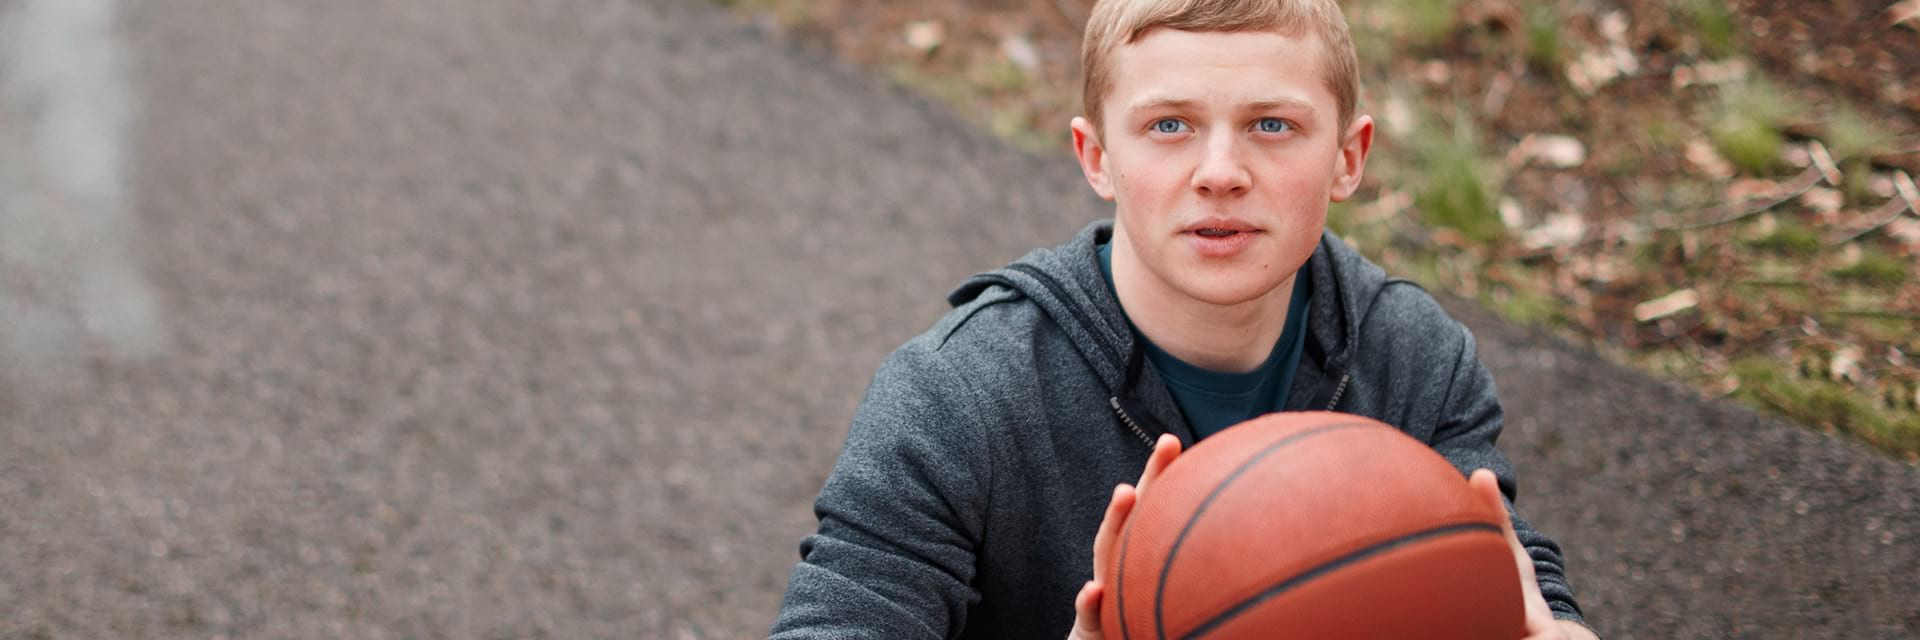 JACK HAD PEDIATRIC CANCER. TODAY, HE'S THINKING ABOUT COLLEGE.